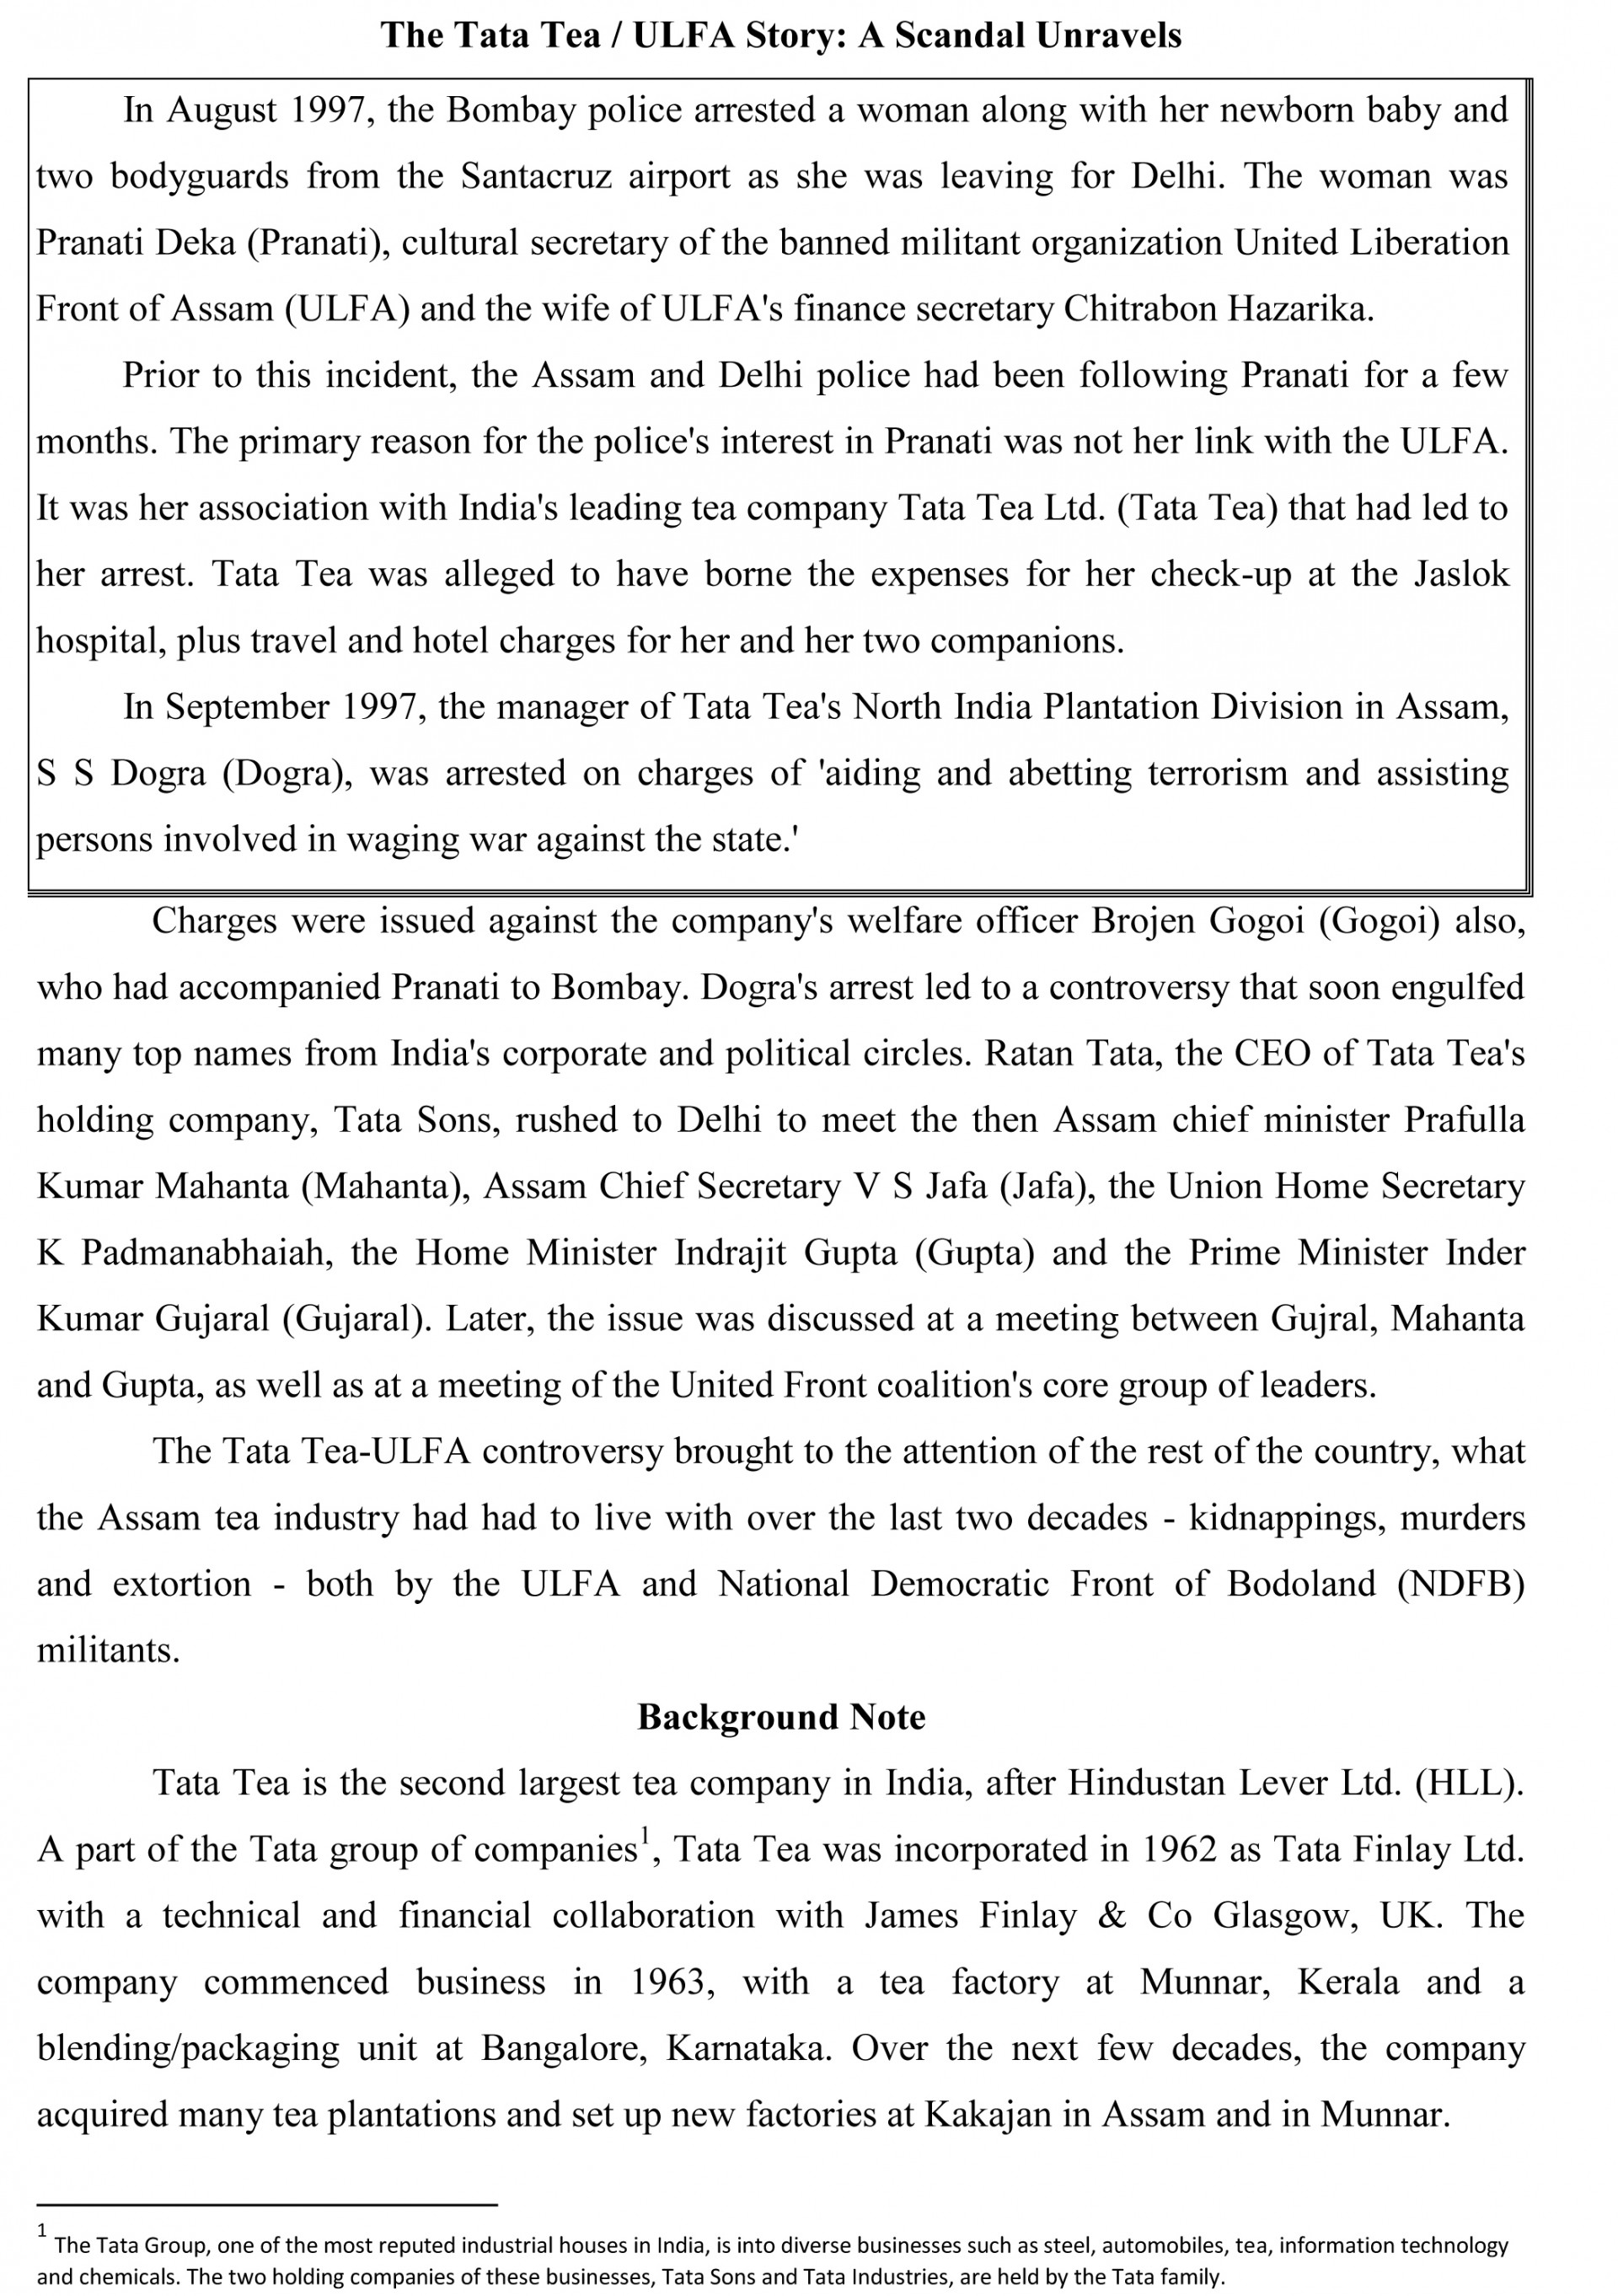 024 Essay Example Paragraph Topics The Tata Tea Best 5 7th Grade For Elementary Students Five List 1920